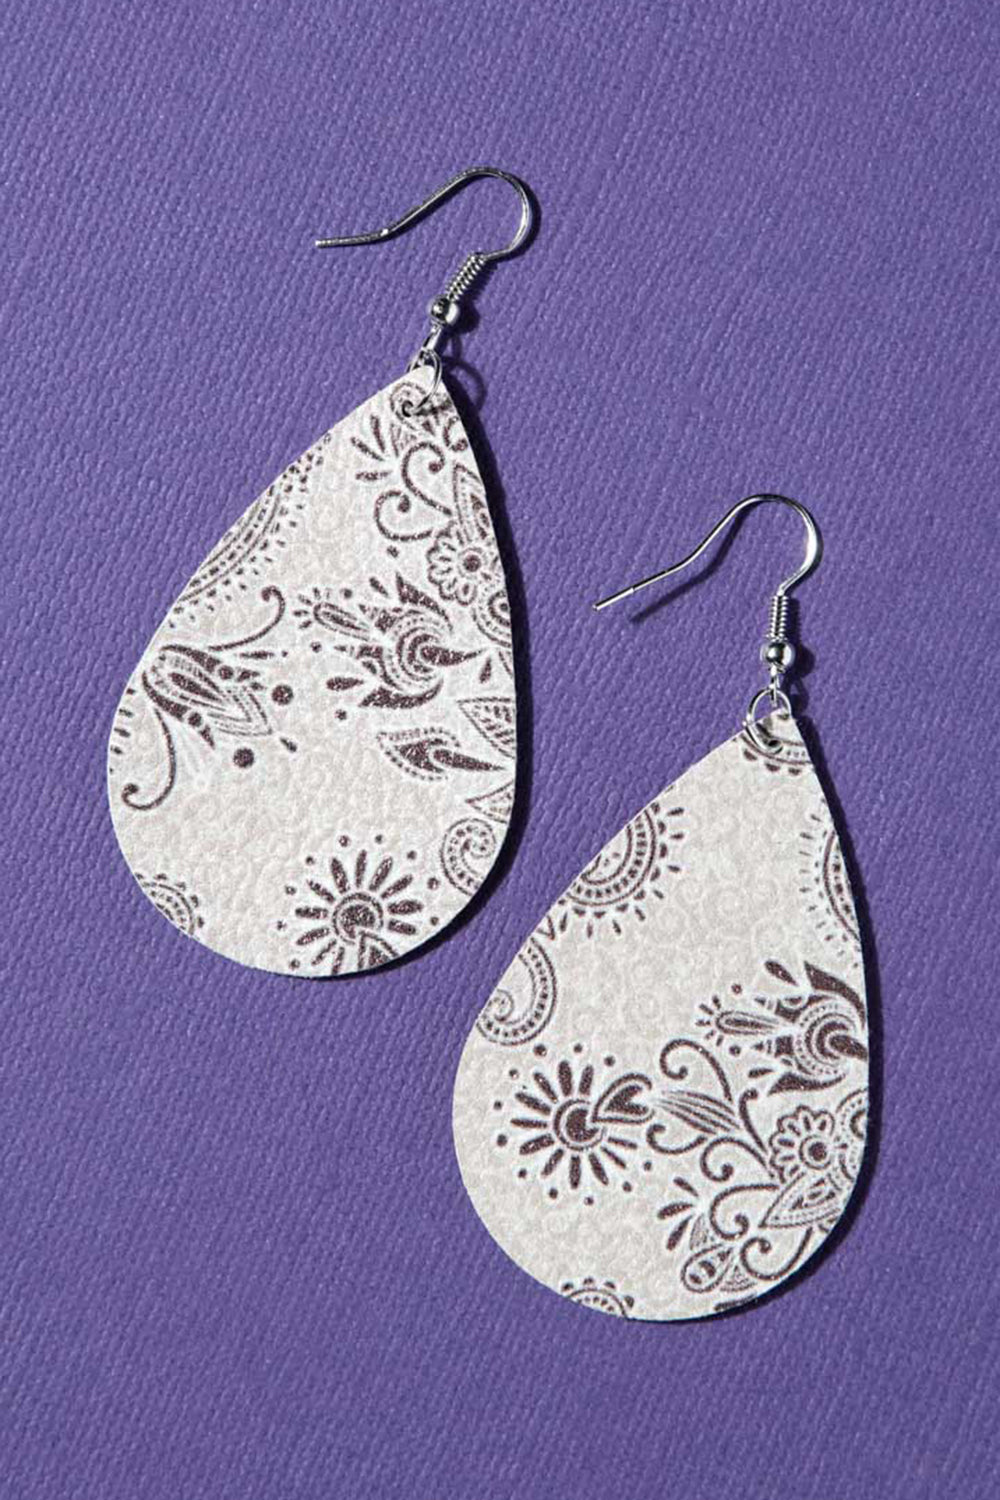 Type 2 Pleasant in Purple Earrings